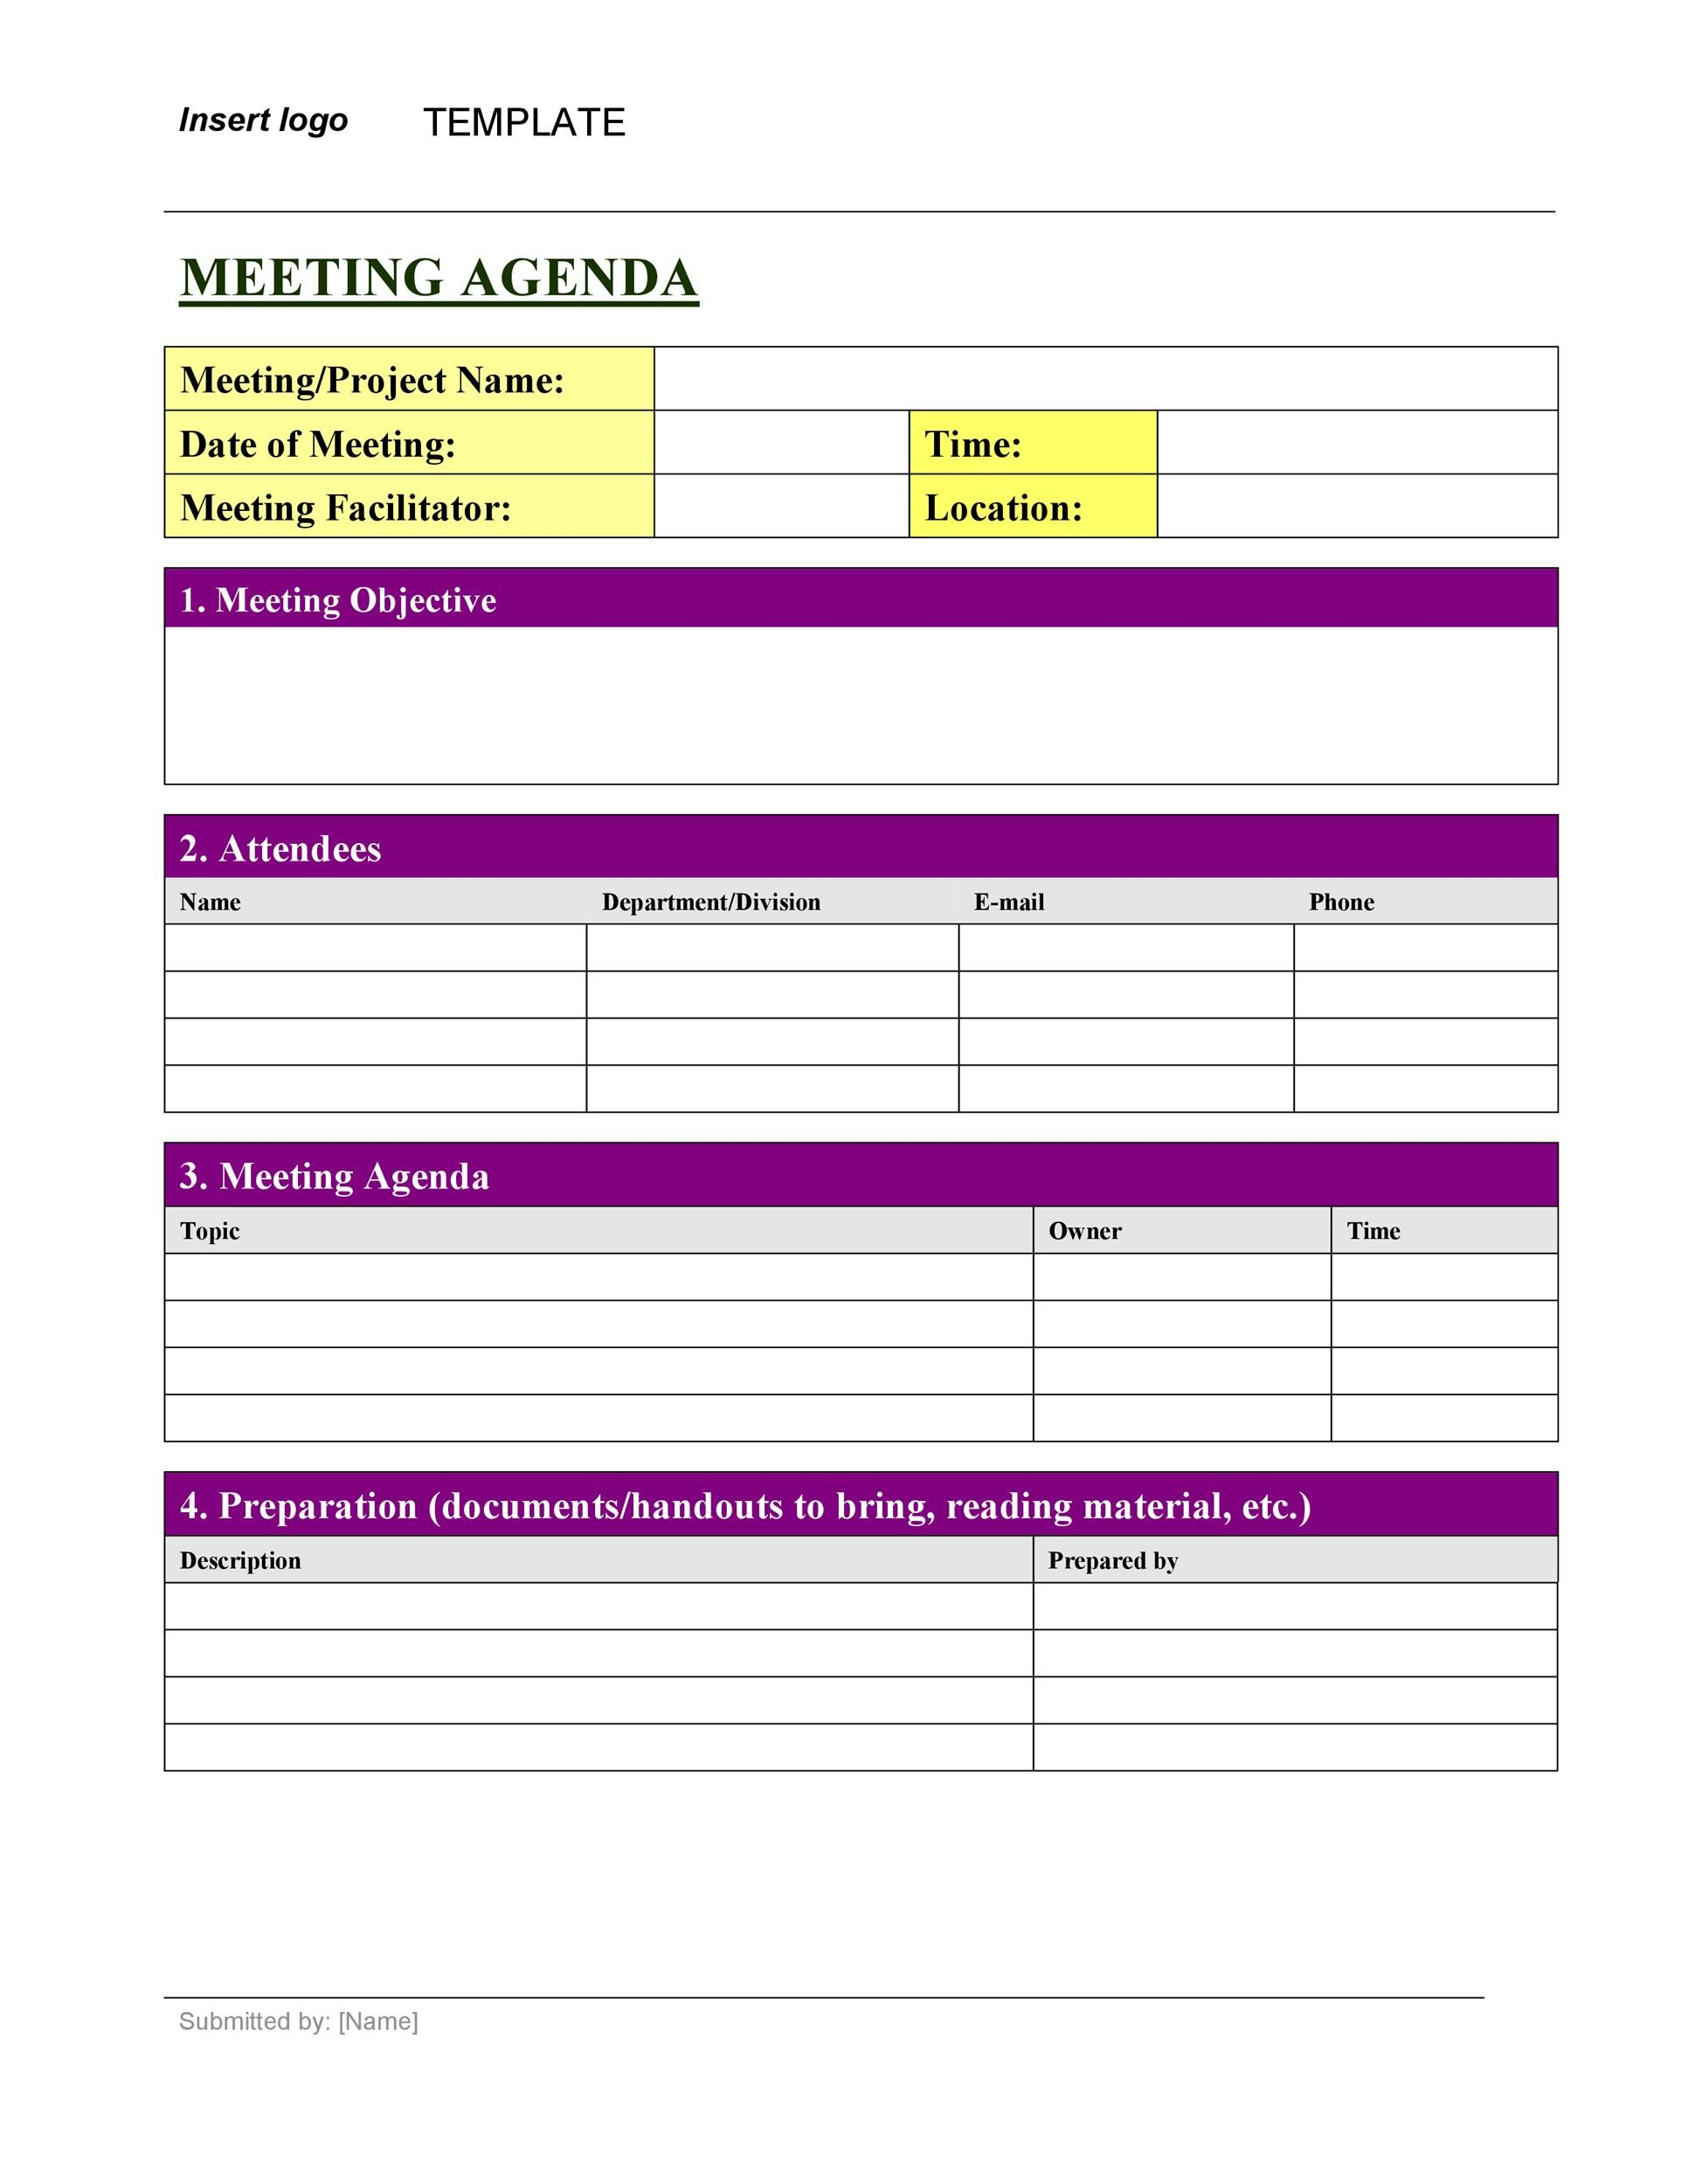 20 Handy Meeting Minutes \ Meeting Notes Templates - meetings template